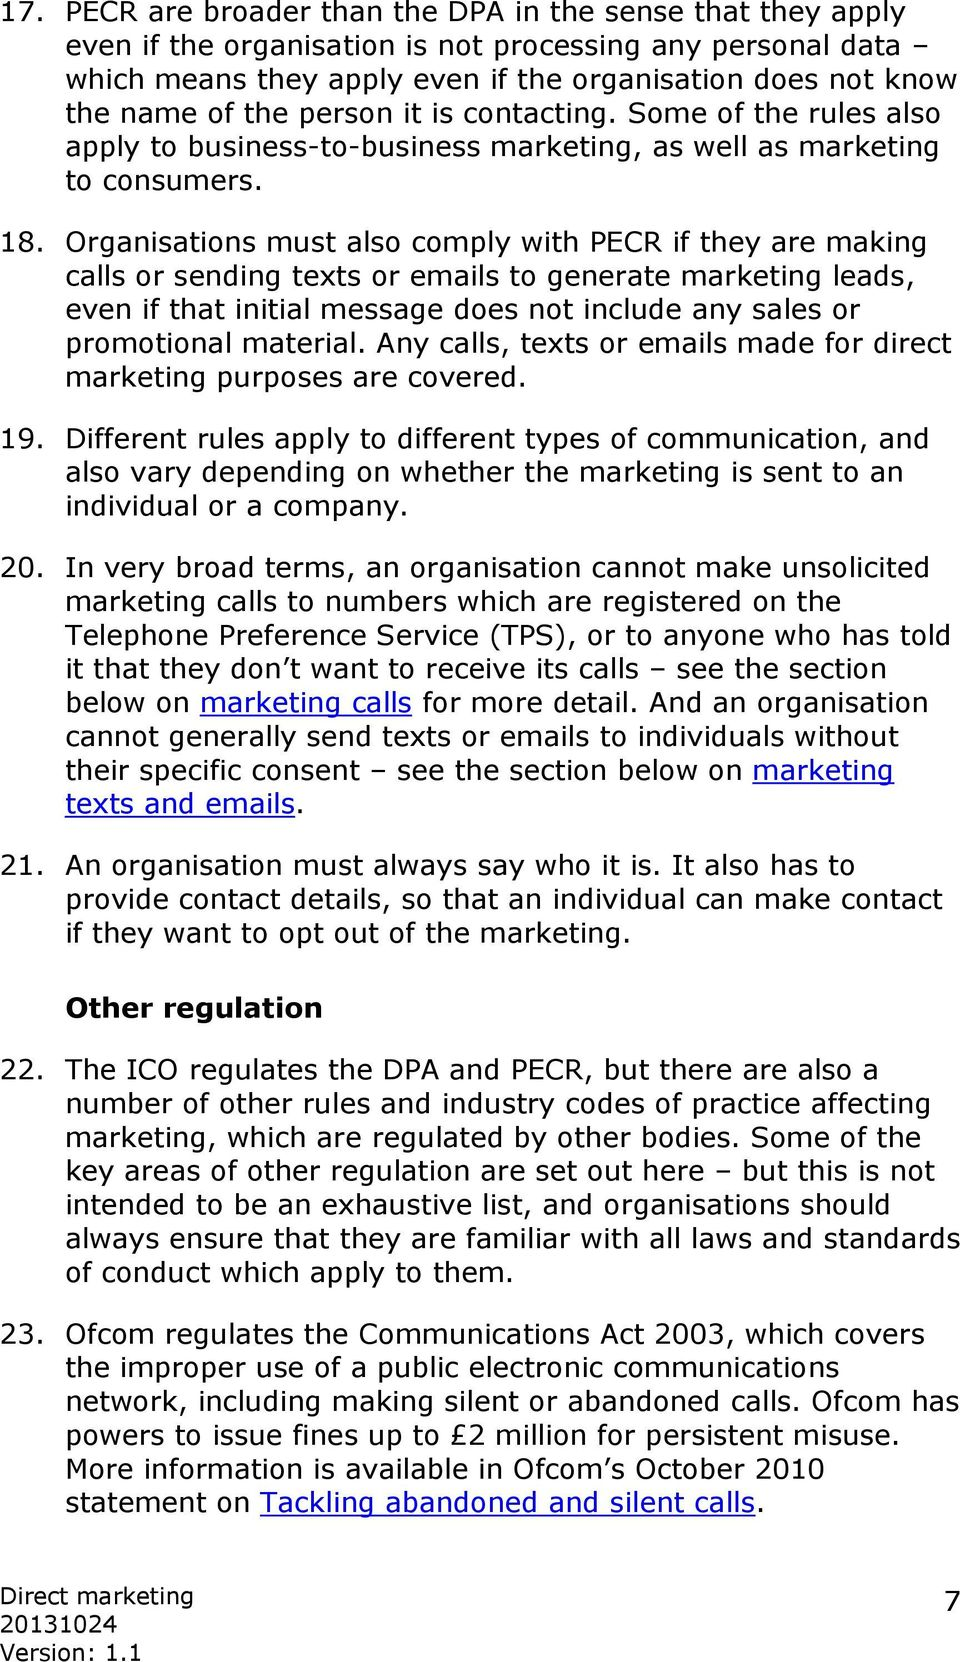 Organisations must also comply with PECR if they are making calls or sending texts or emails to generate marketing leads, even if that initial message does not include any sales or promotional